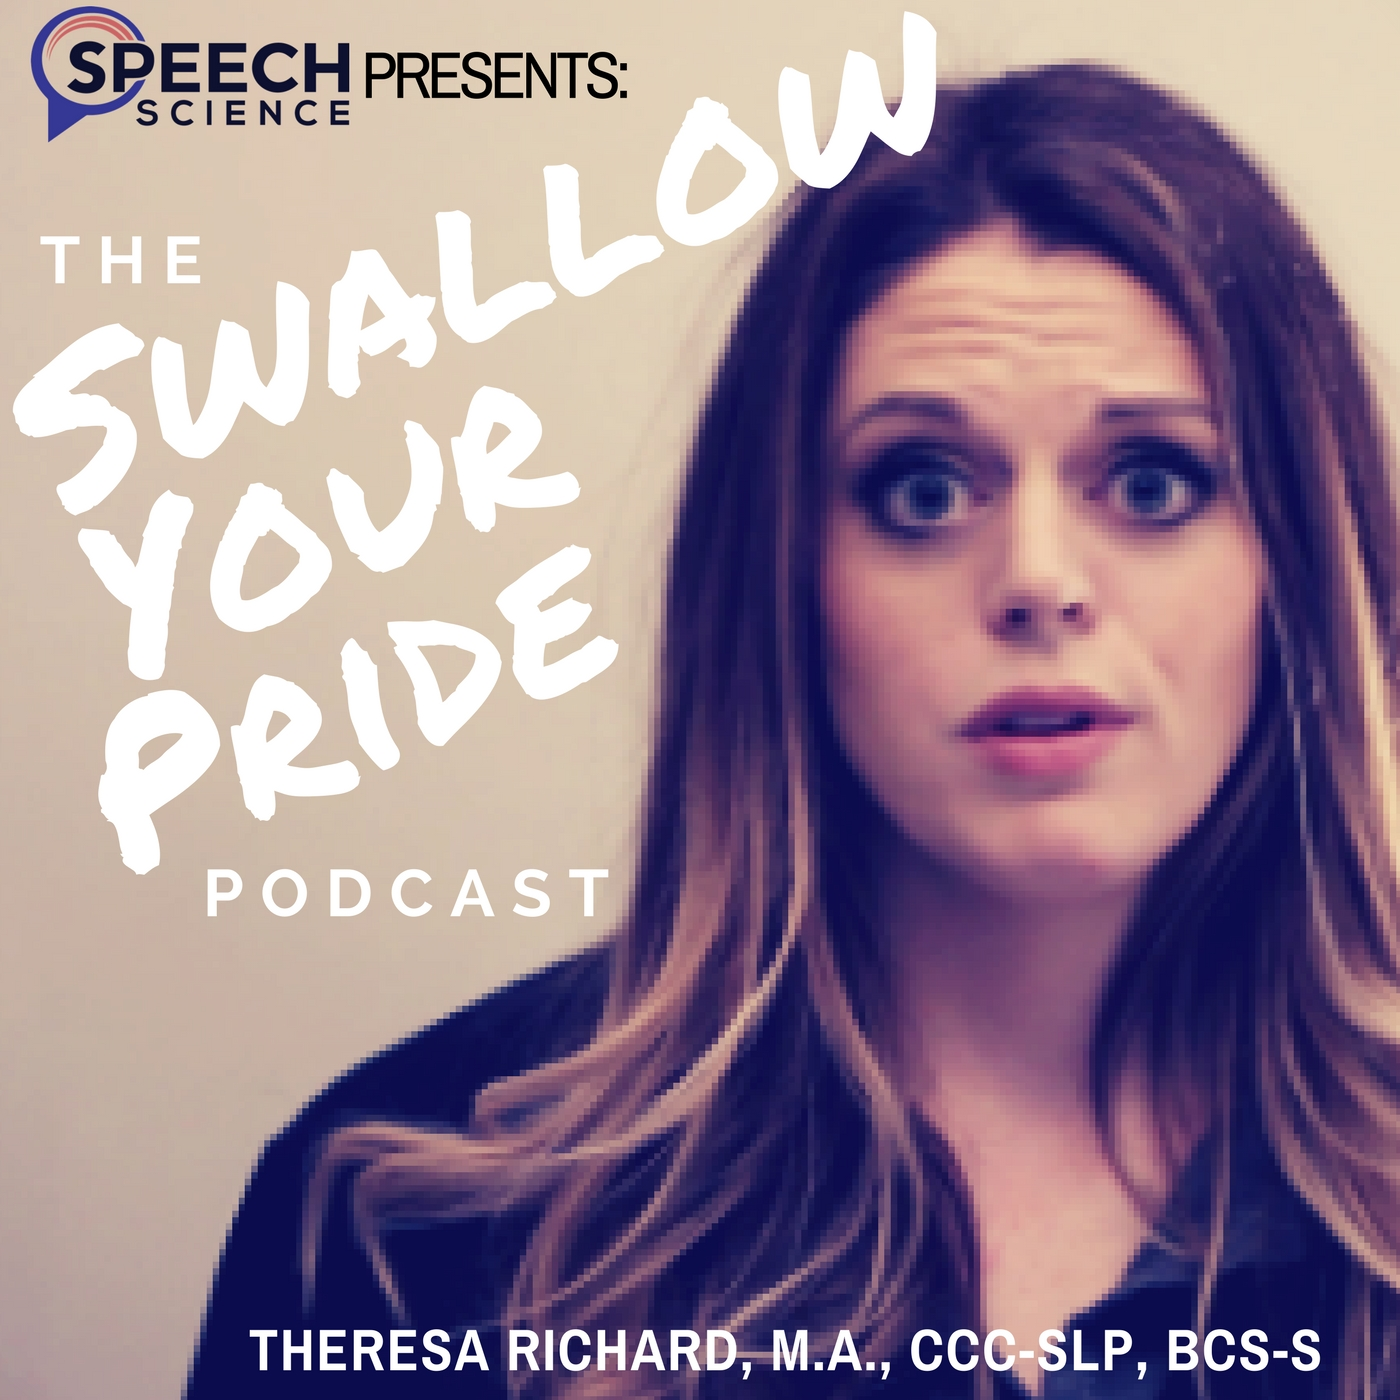 Intro to the Swallow Your Pride Podcast – Theresa Richard, M.A., CCC-SLP, BCS-S